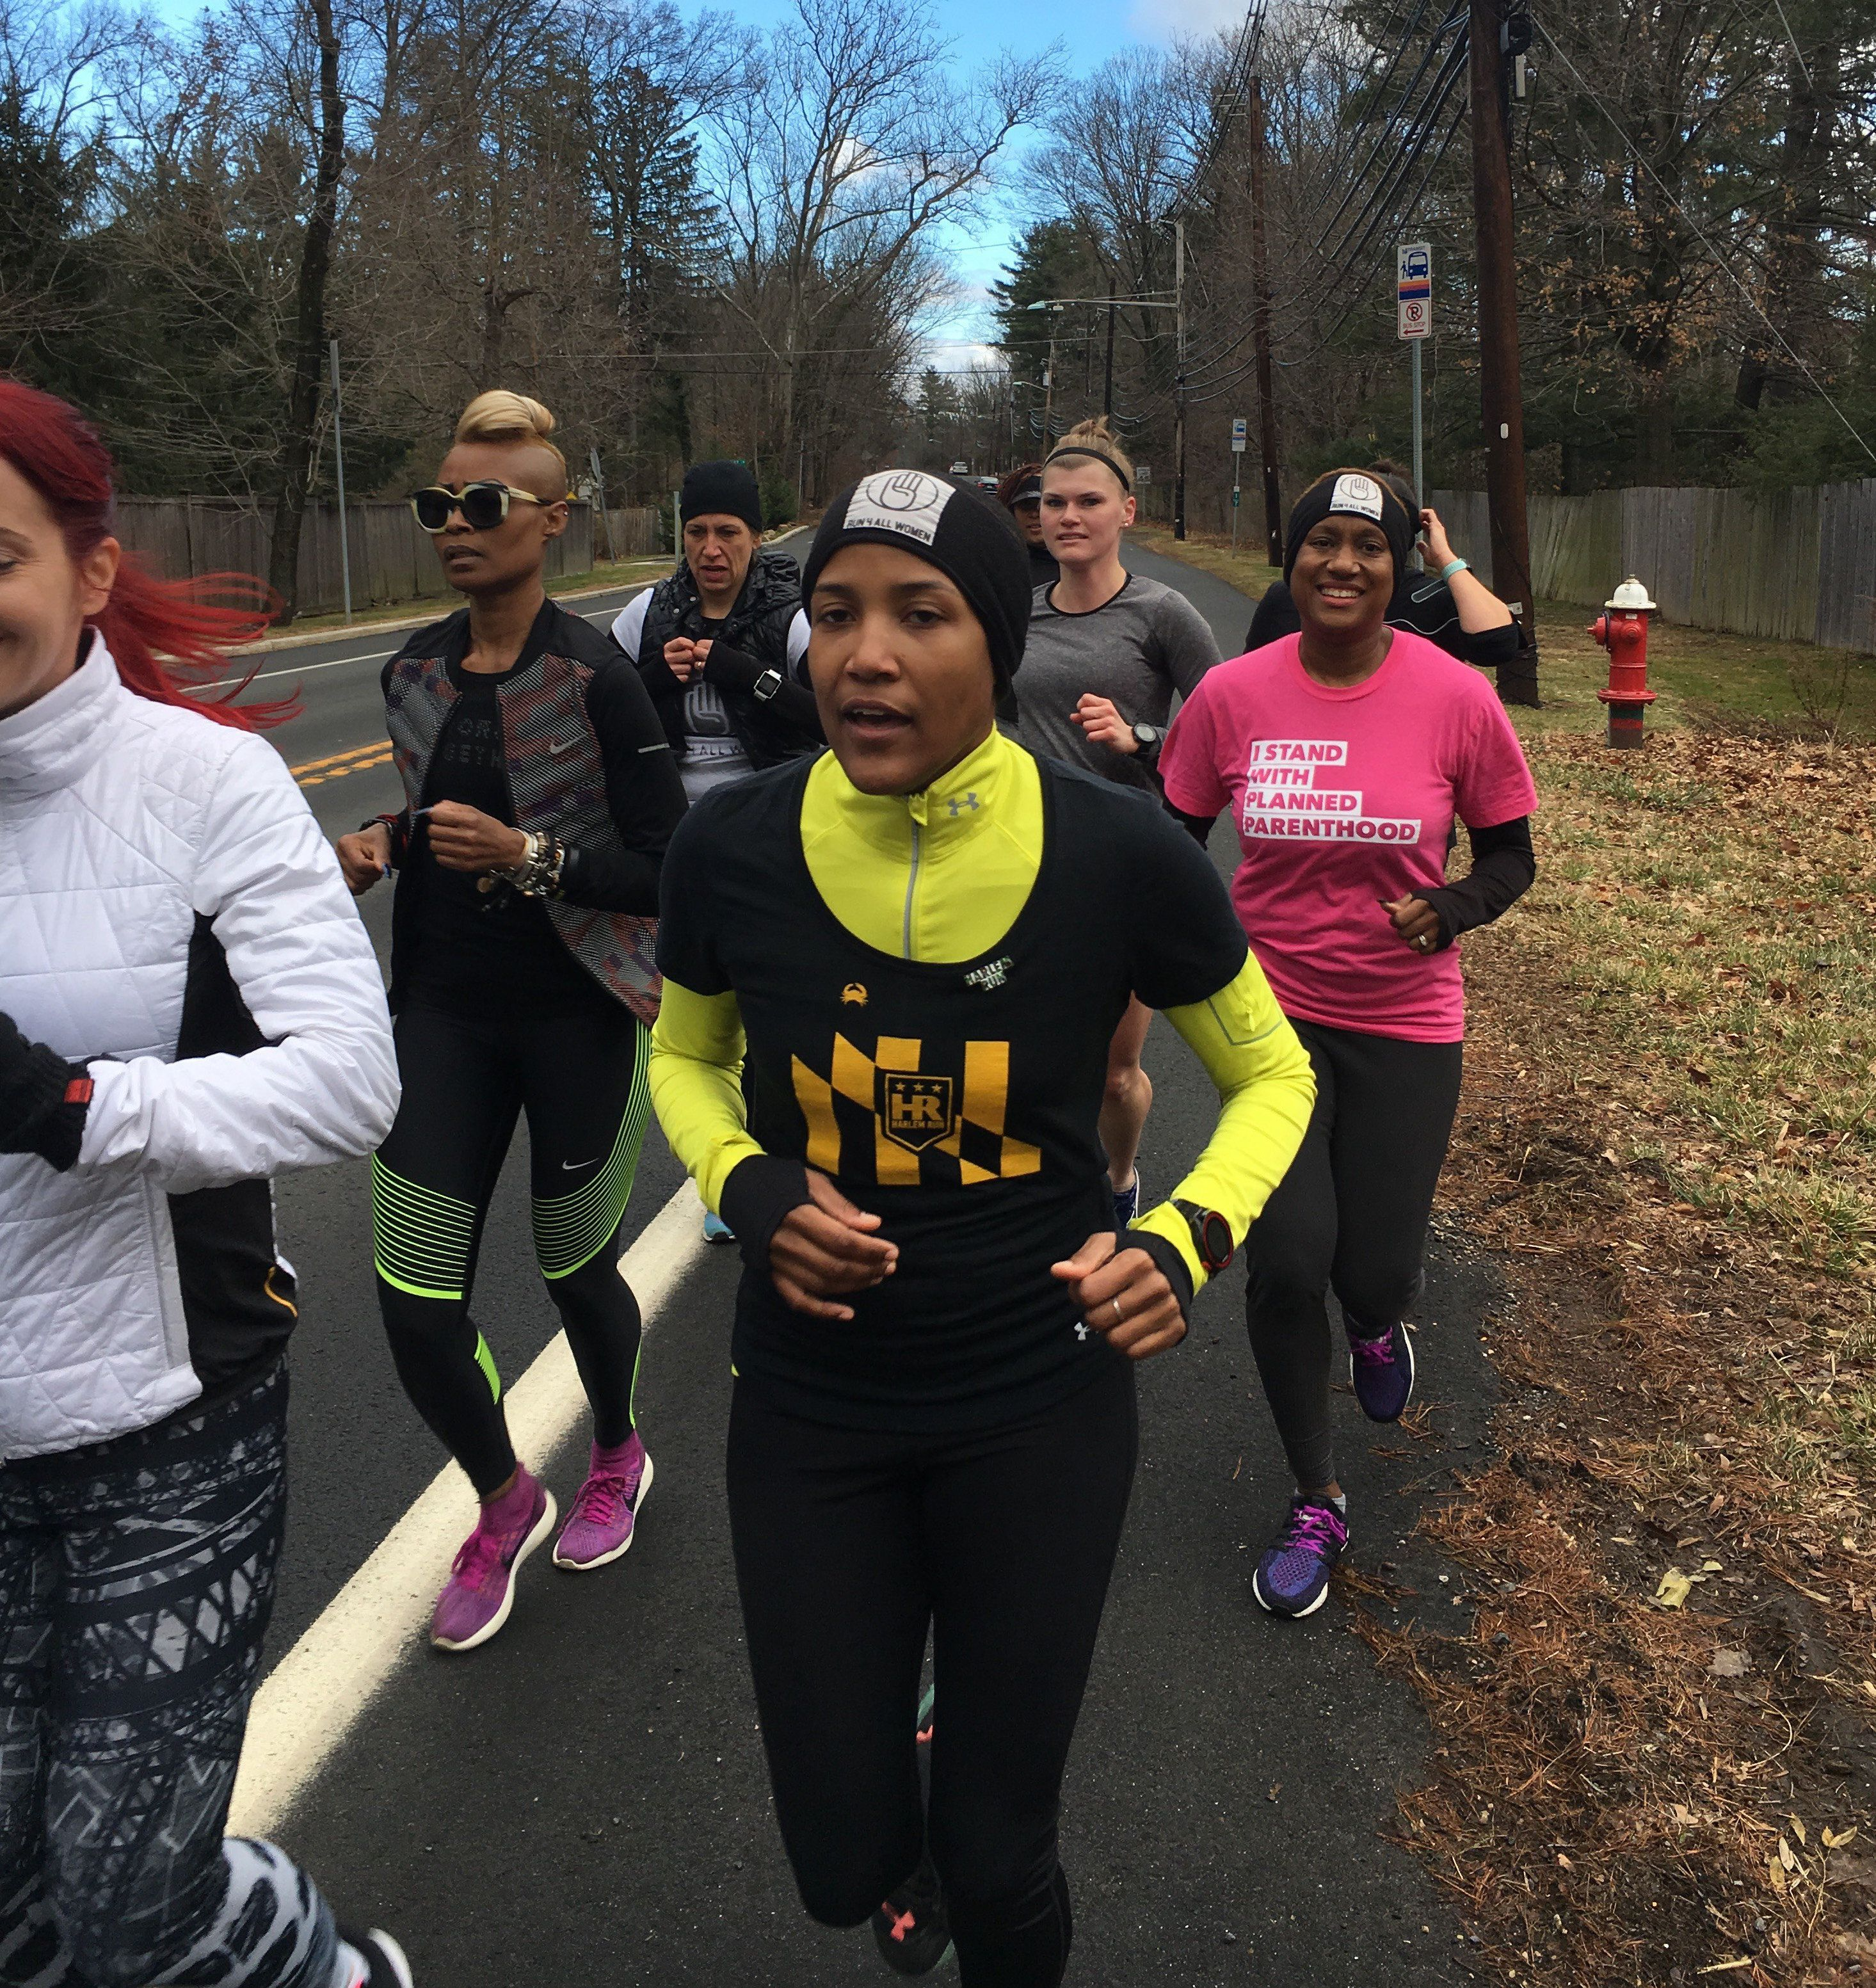 Alison Désir (in yellow) runs part of the 240-mile relay from Harlem New York City, to Washington D.C., that she organized to raise money for Planned Parenthood, January 19, 2017.